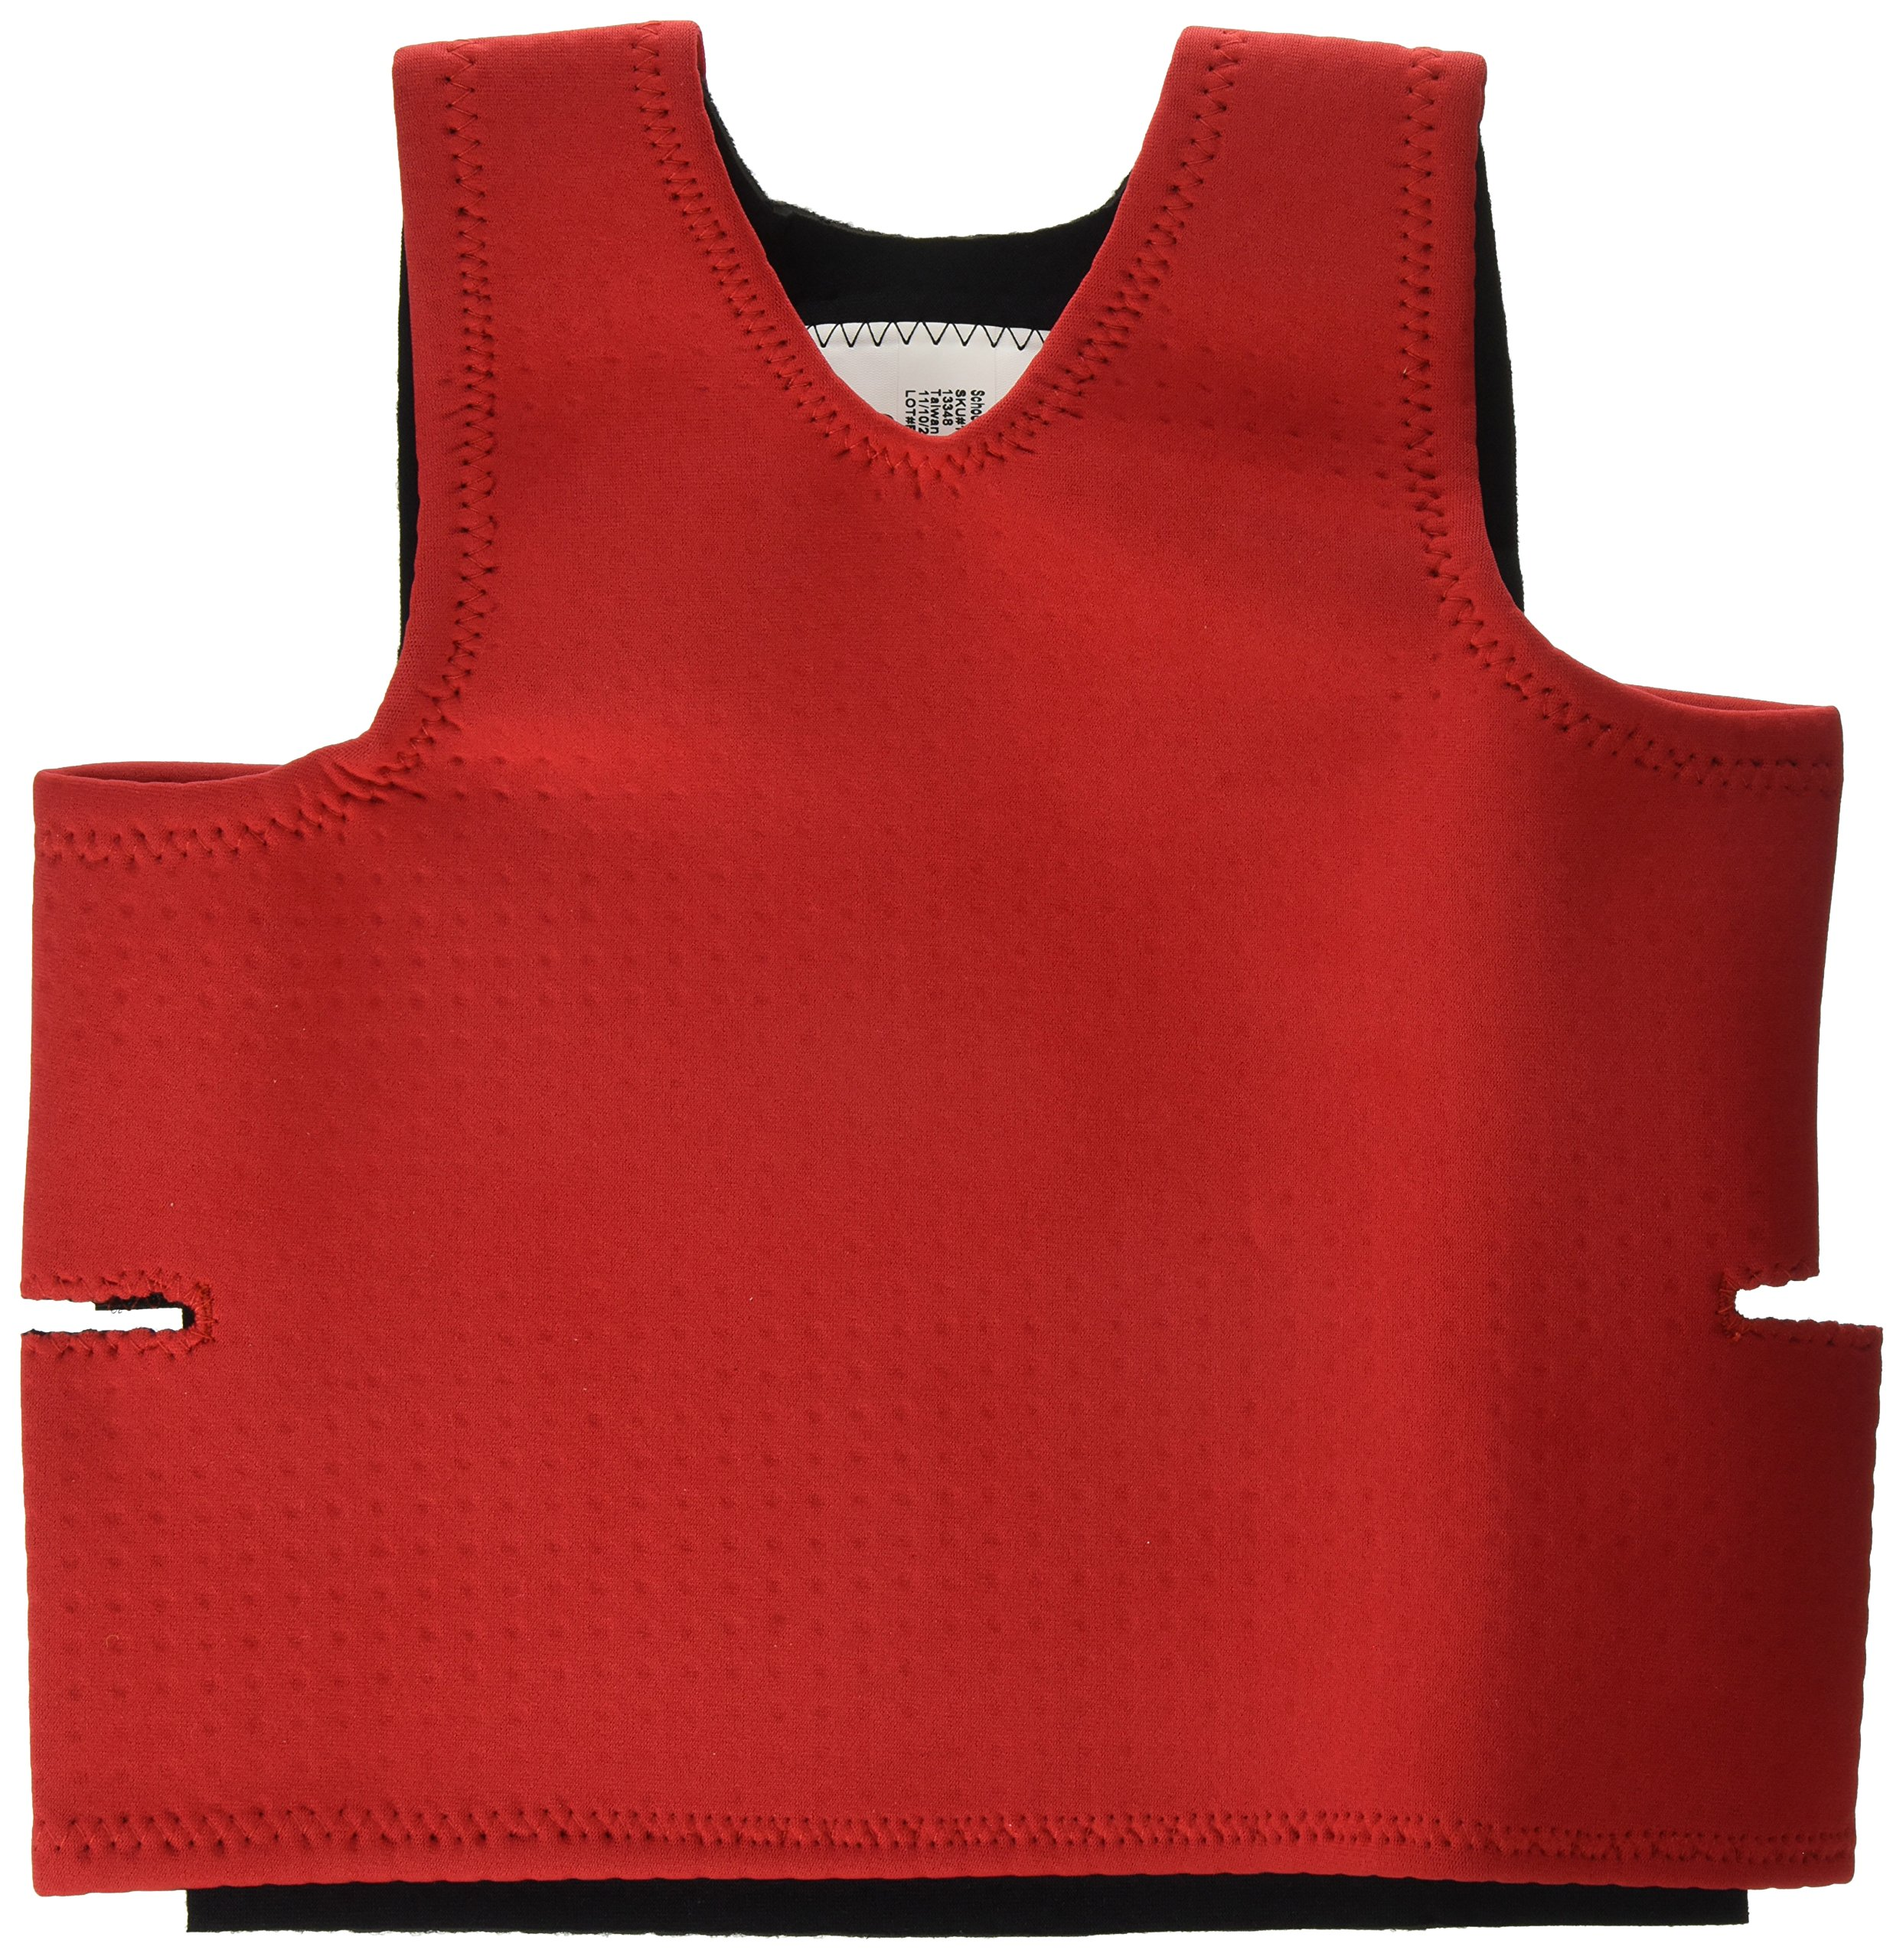 Abilitations Integrations Deep Pressure Sensory Vest, Extra Small, Red